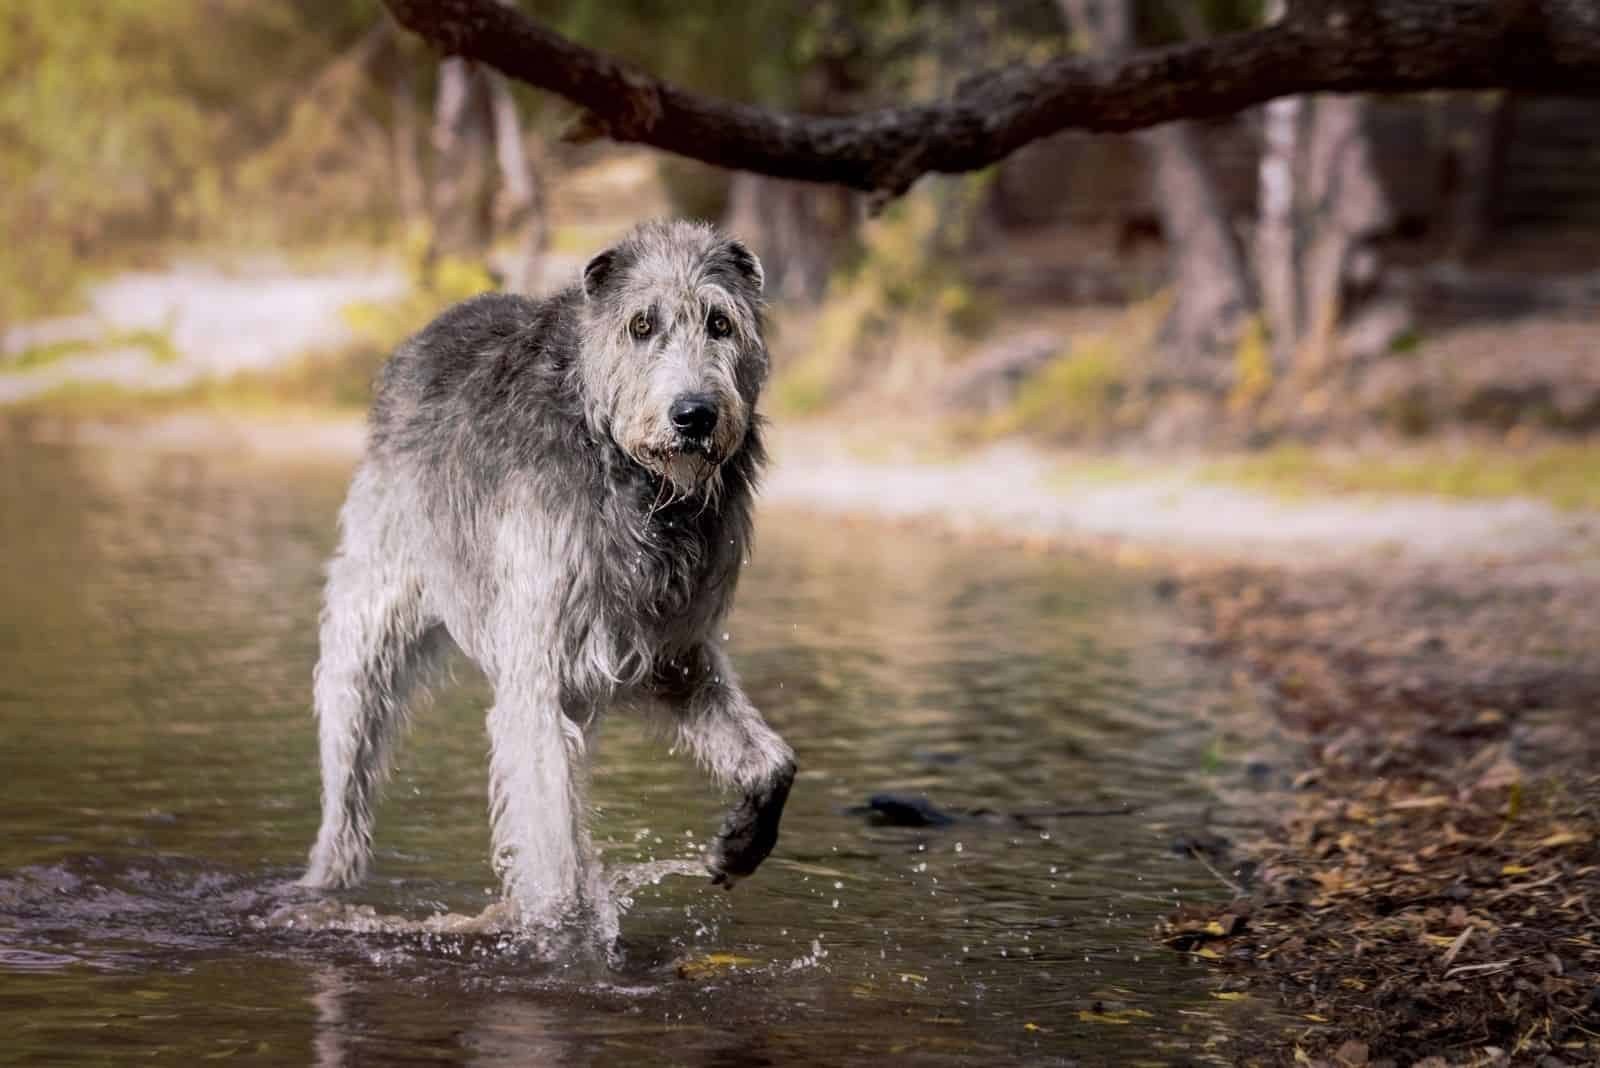 irish wolfhound amidst in the waters walking